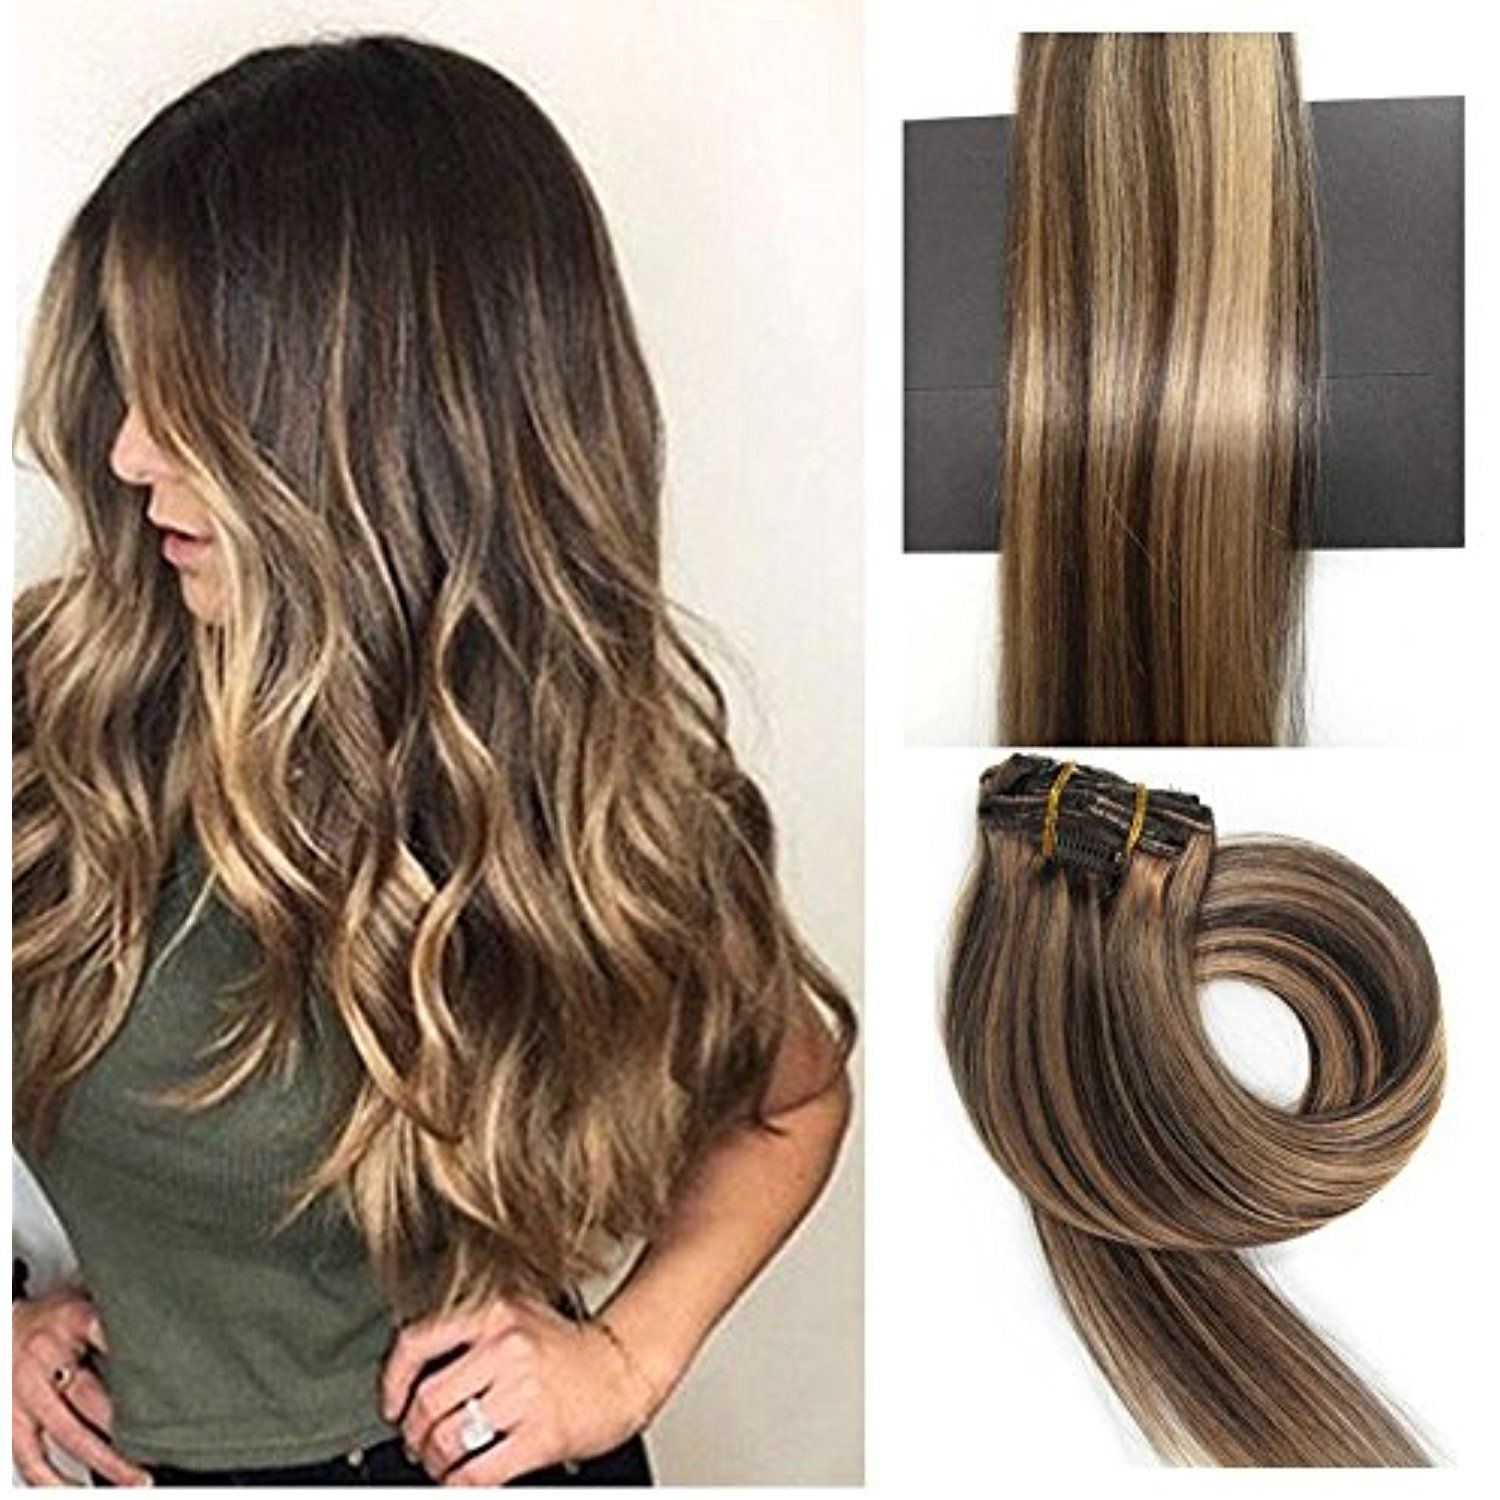 Thefashionway Brazilian Human Hair Extensions Clip In Silky Straight